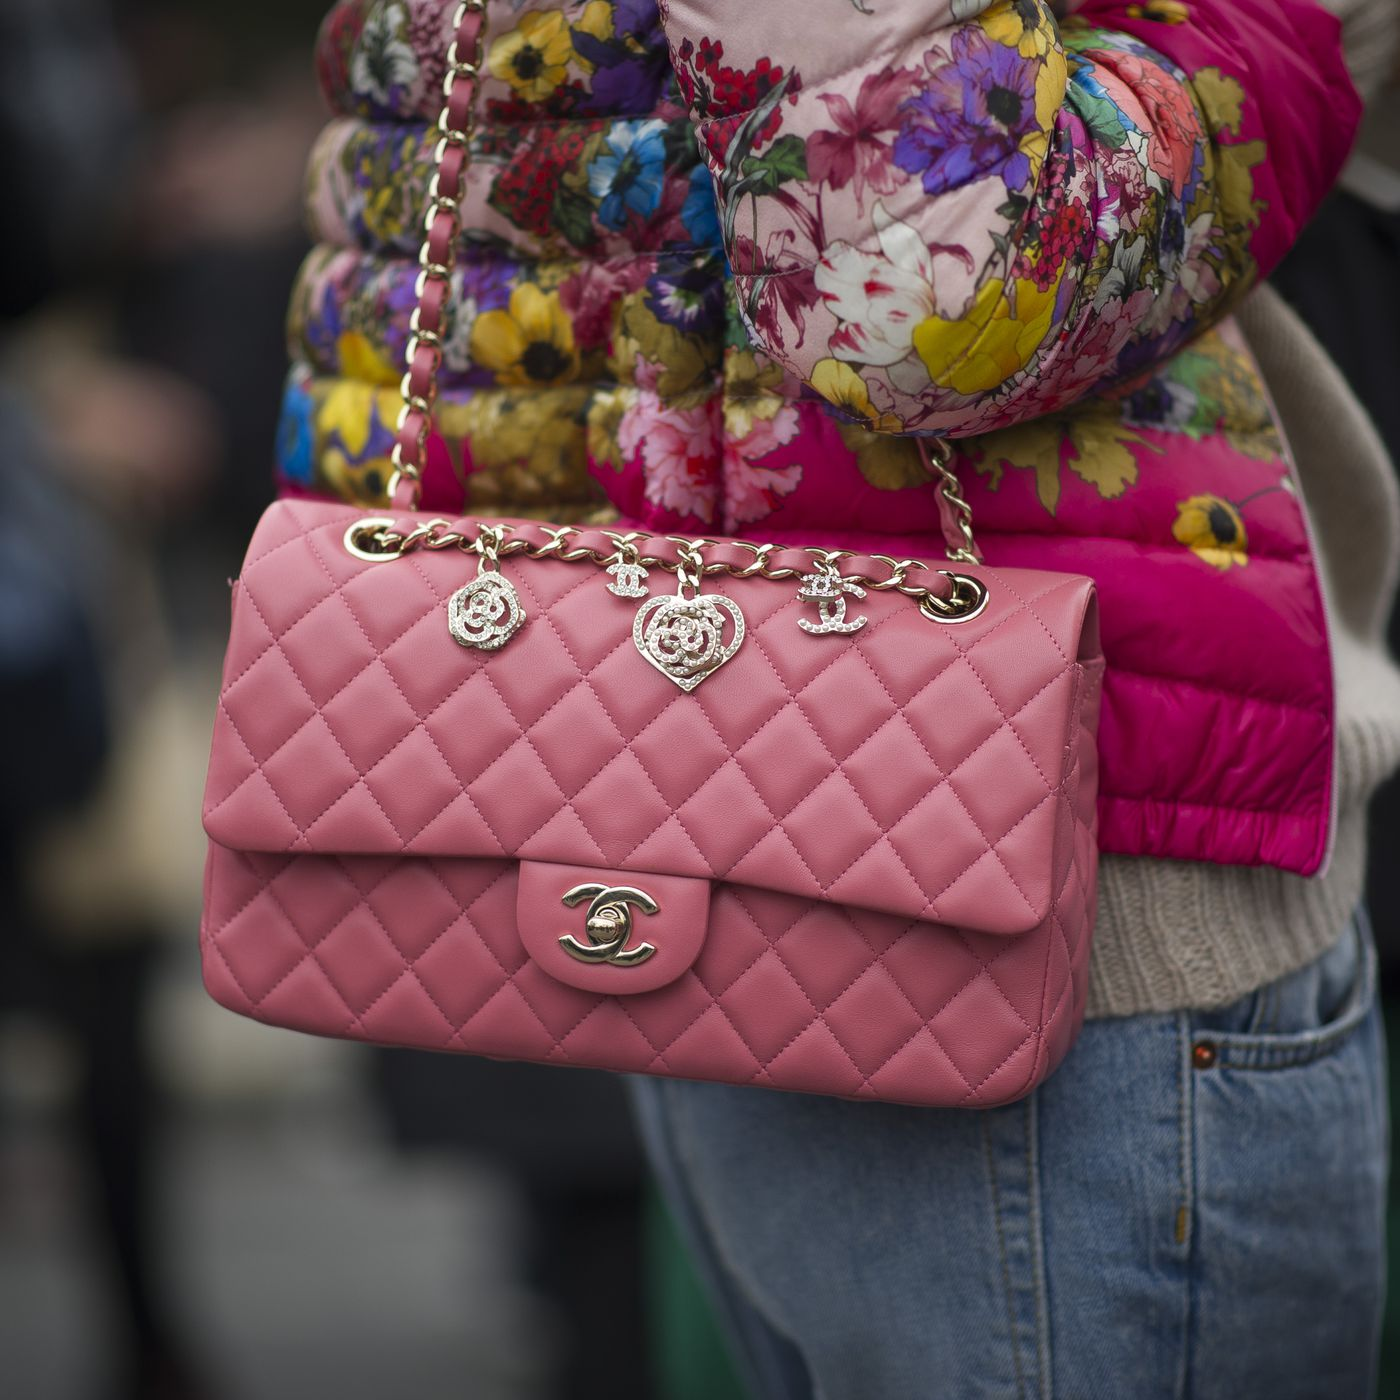 9e731101a569 See How Much Chanel Bag Prices Have Skyrocketed This Decade - Racked